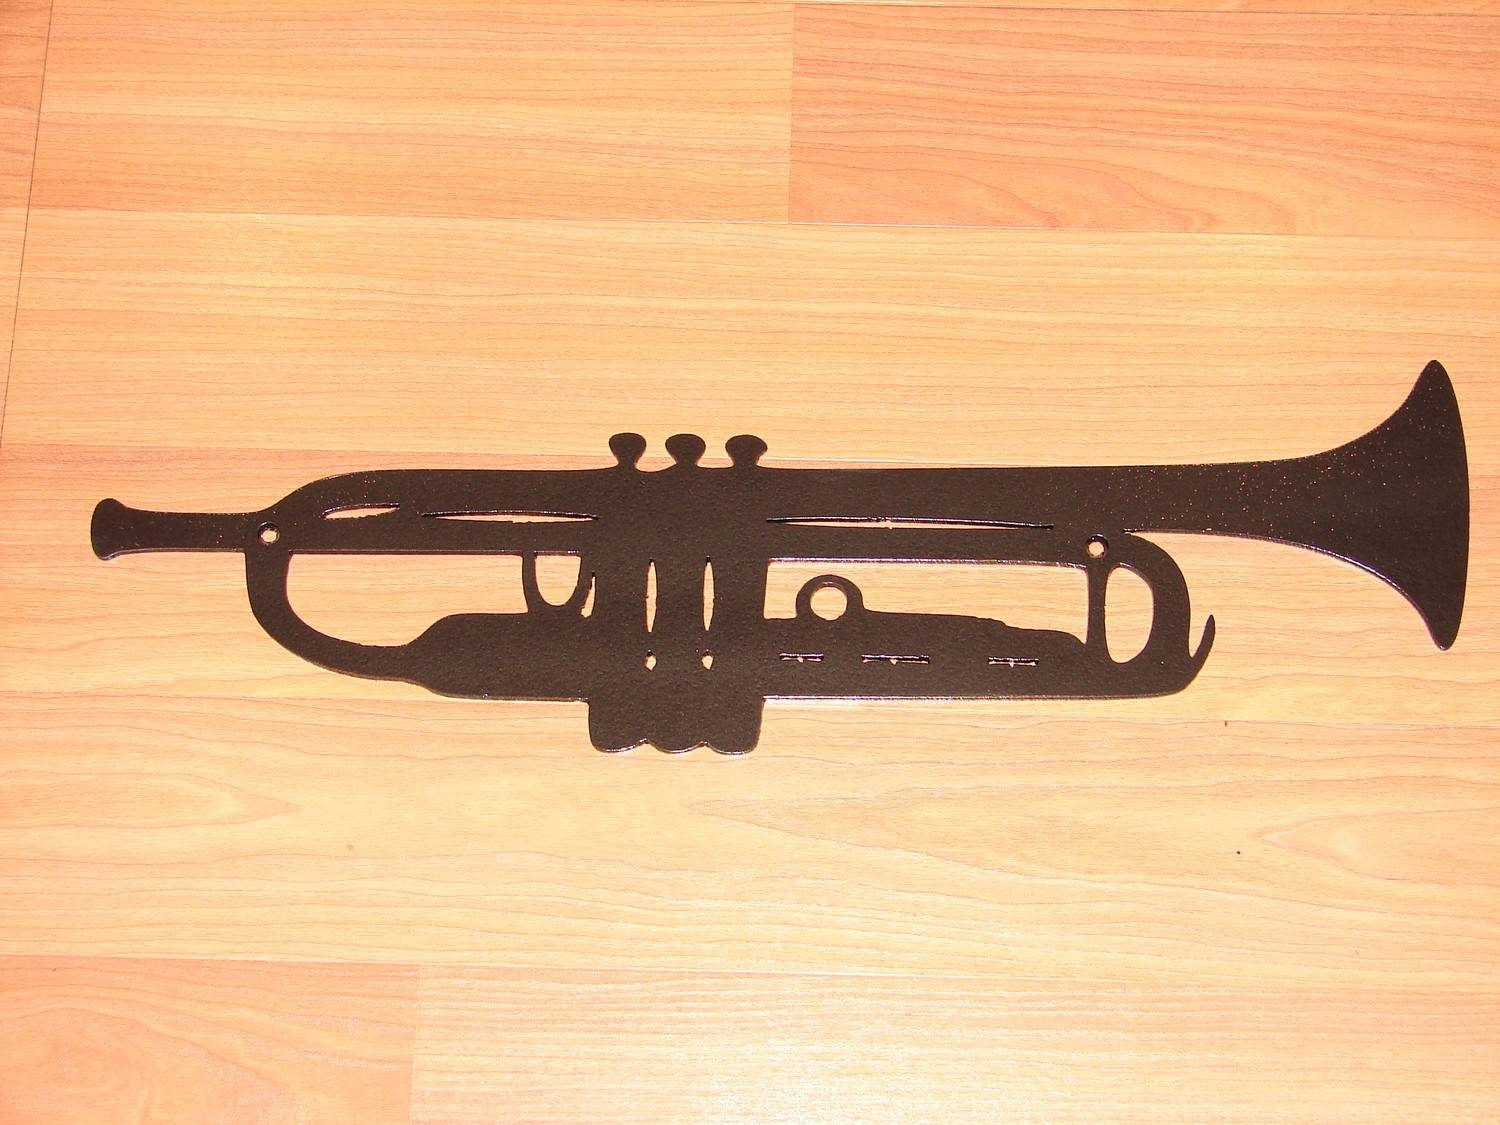 Trumpet Metal Wall Art Decor Music Jazz Instrument Band Intended For Current Musical Instrument Wall Art (View 22 of 25)